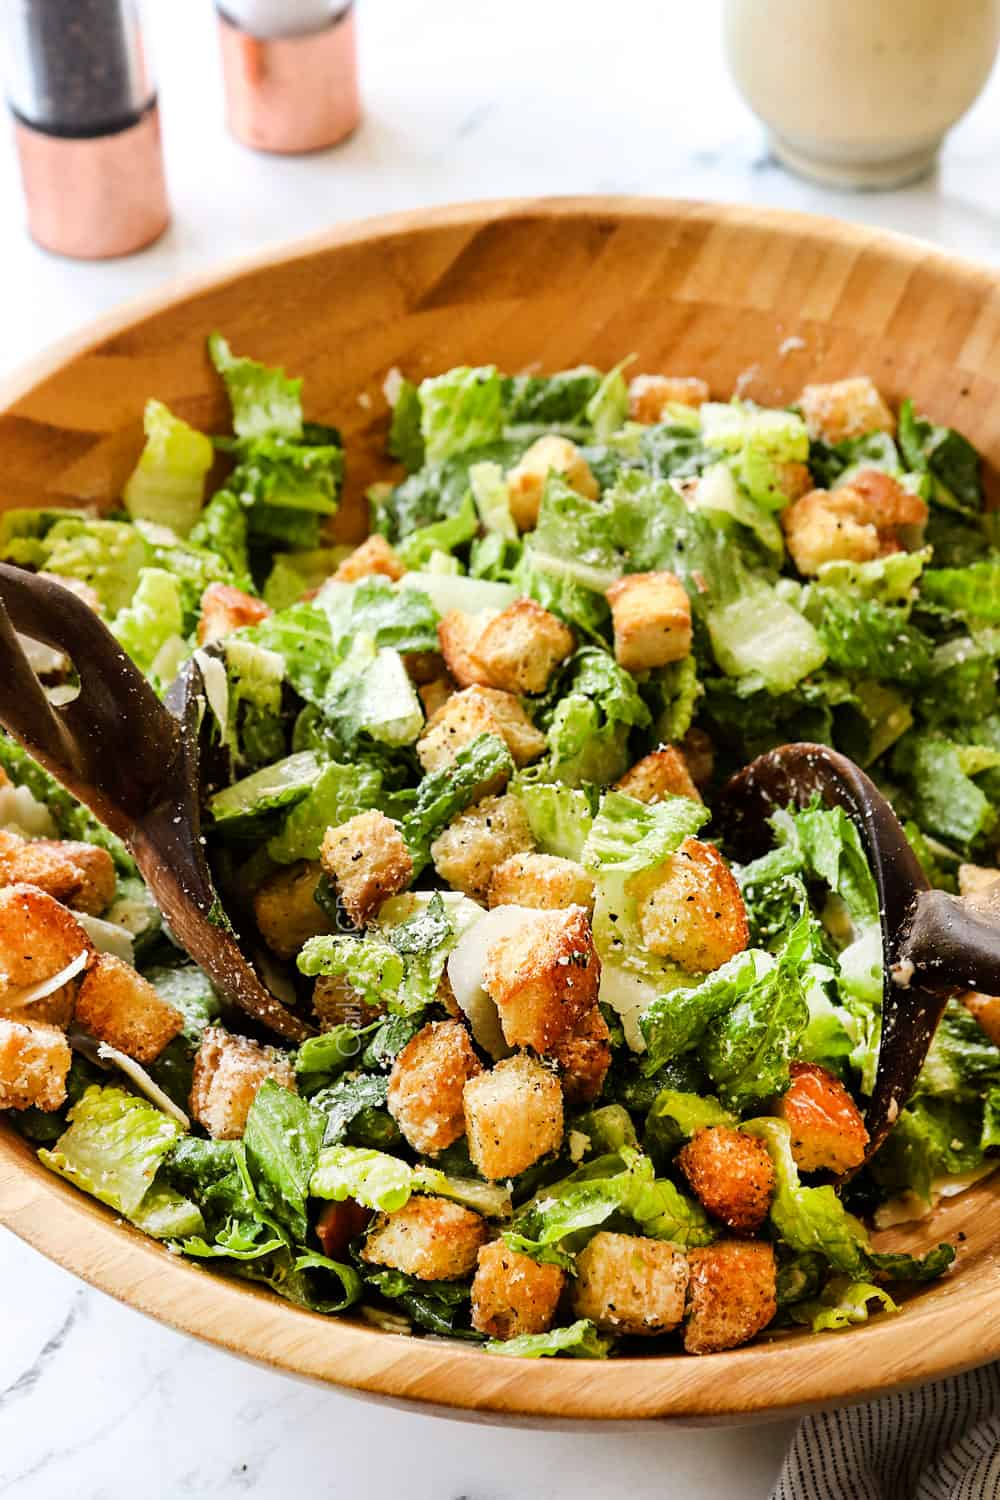 showing how to make Caesar Salad by tossing the ingredients together